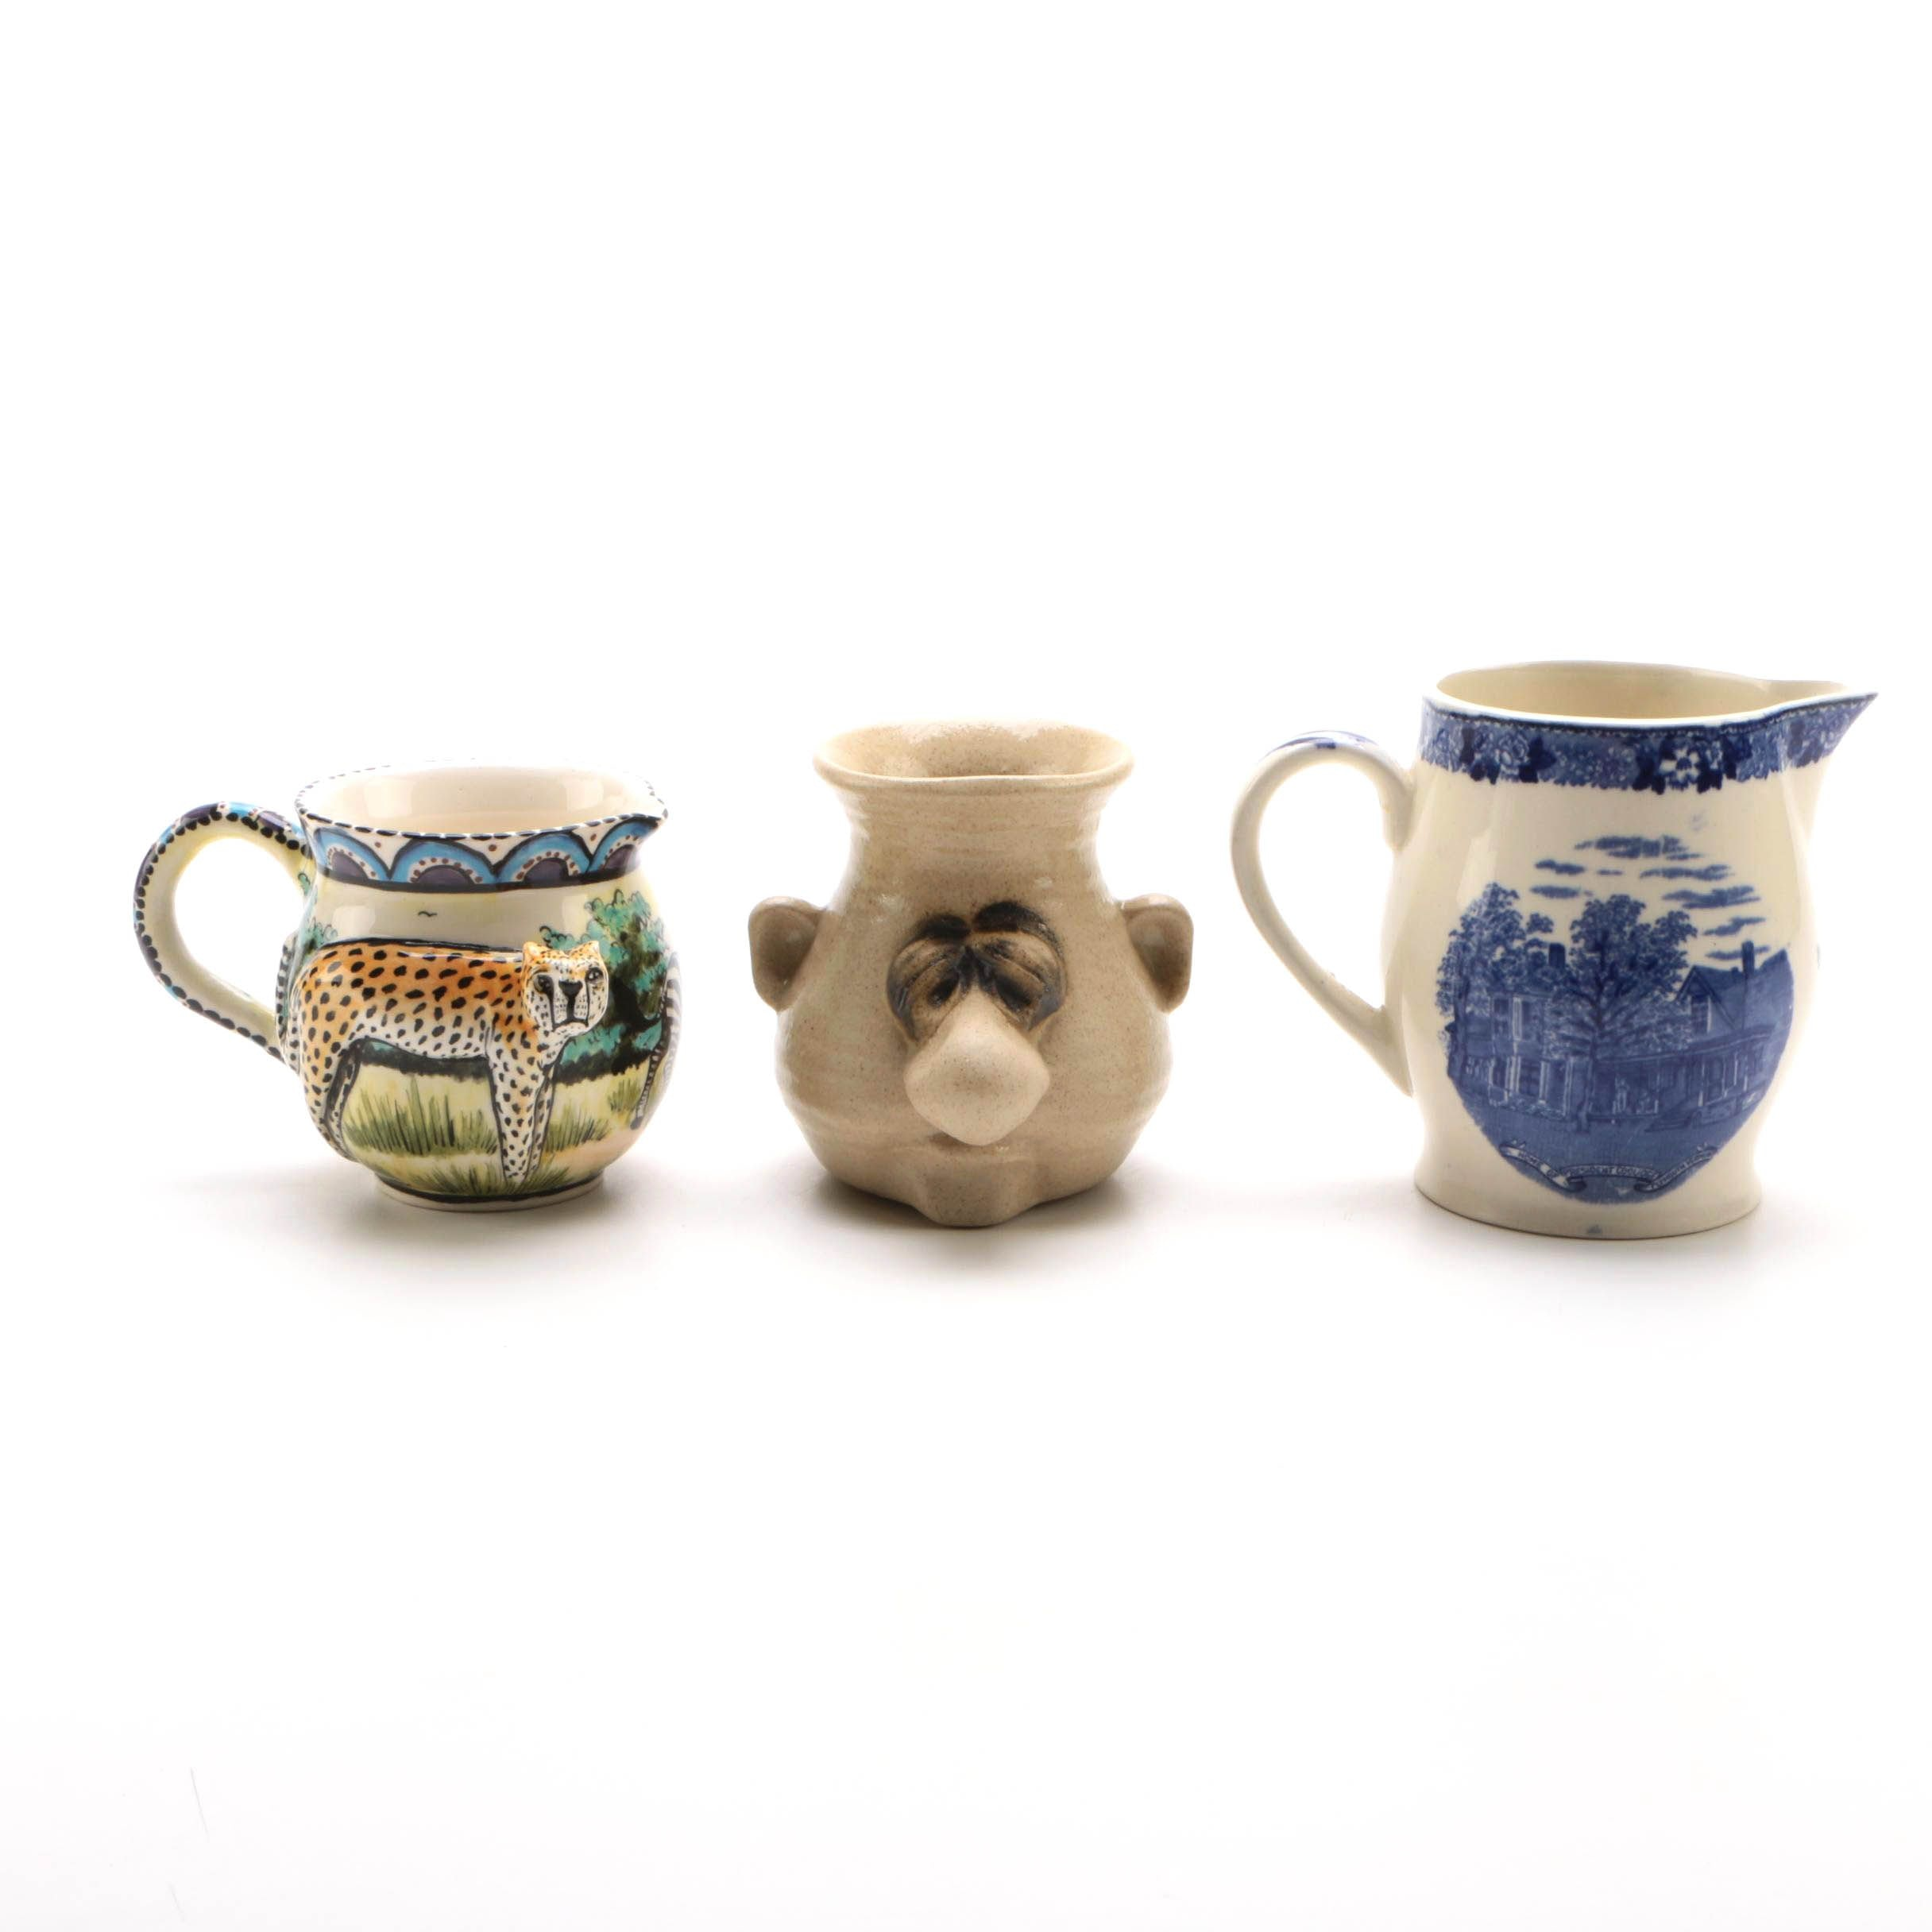 Handmade Ceramic Mugs and Adams Souvenir Series President Coolidge Creamer